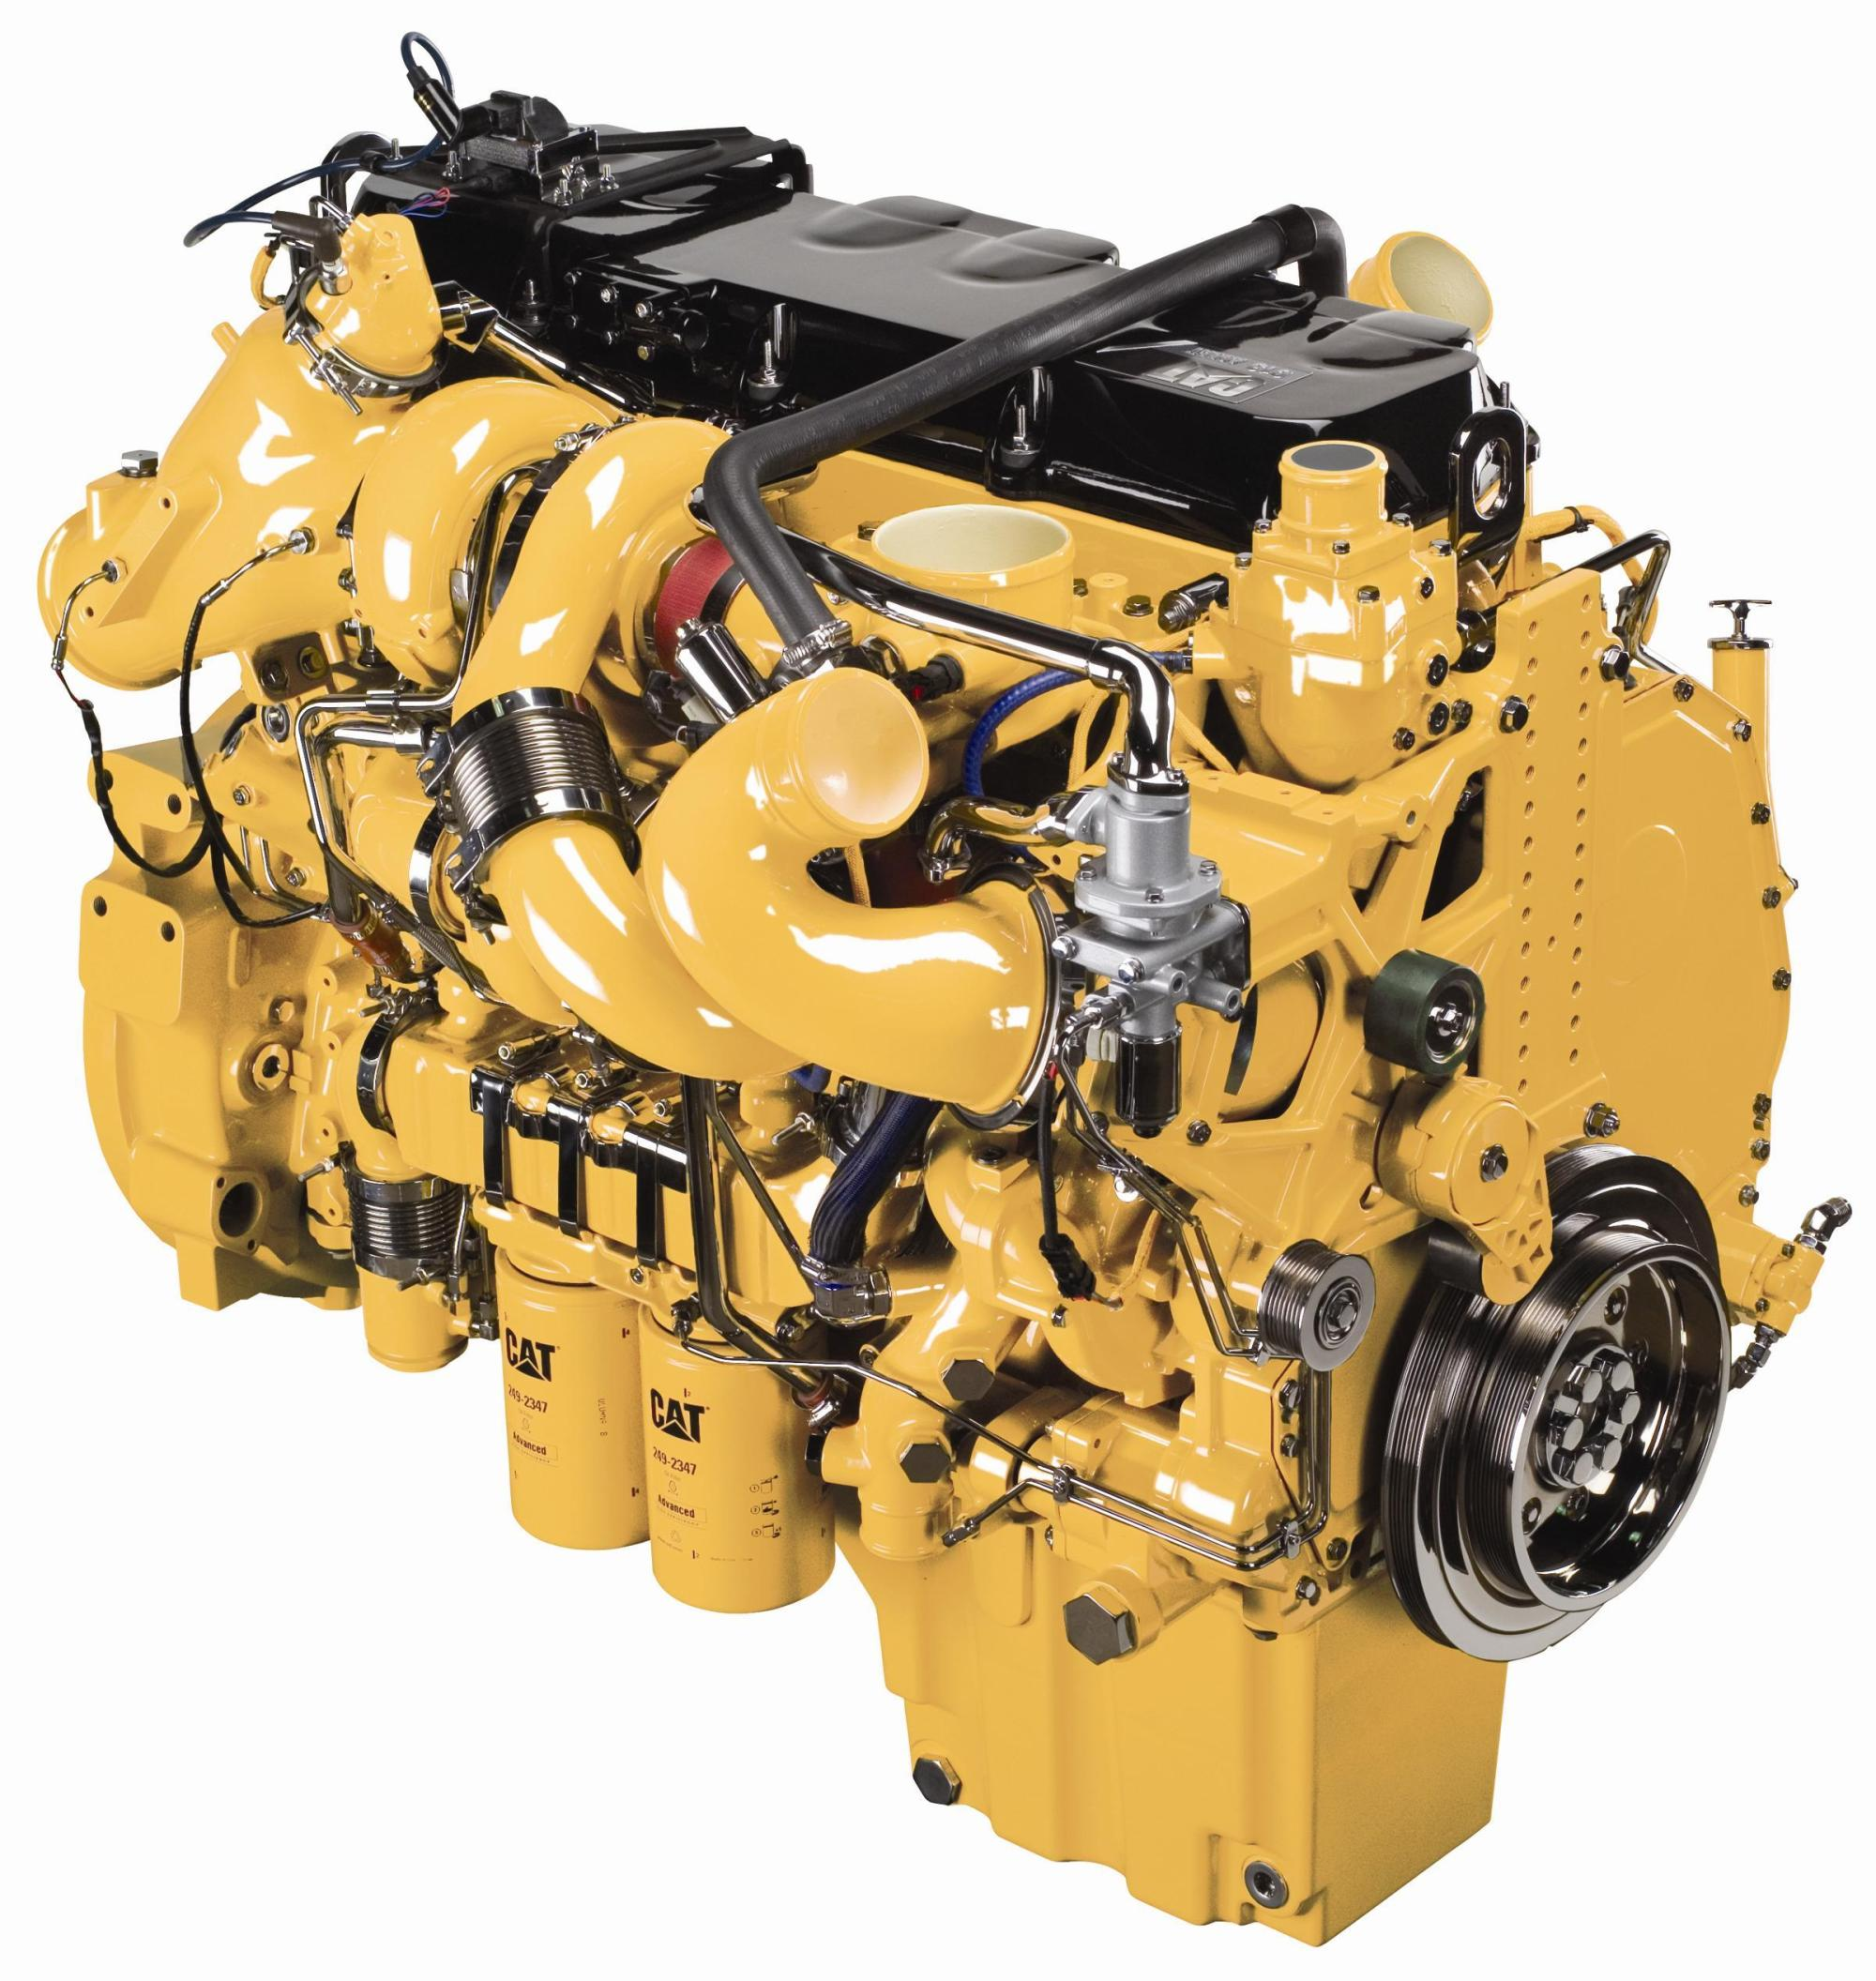 hight resolution of caterpillar reaches 60 million settlement in class action over alleged engine defects machine market minutes